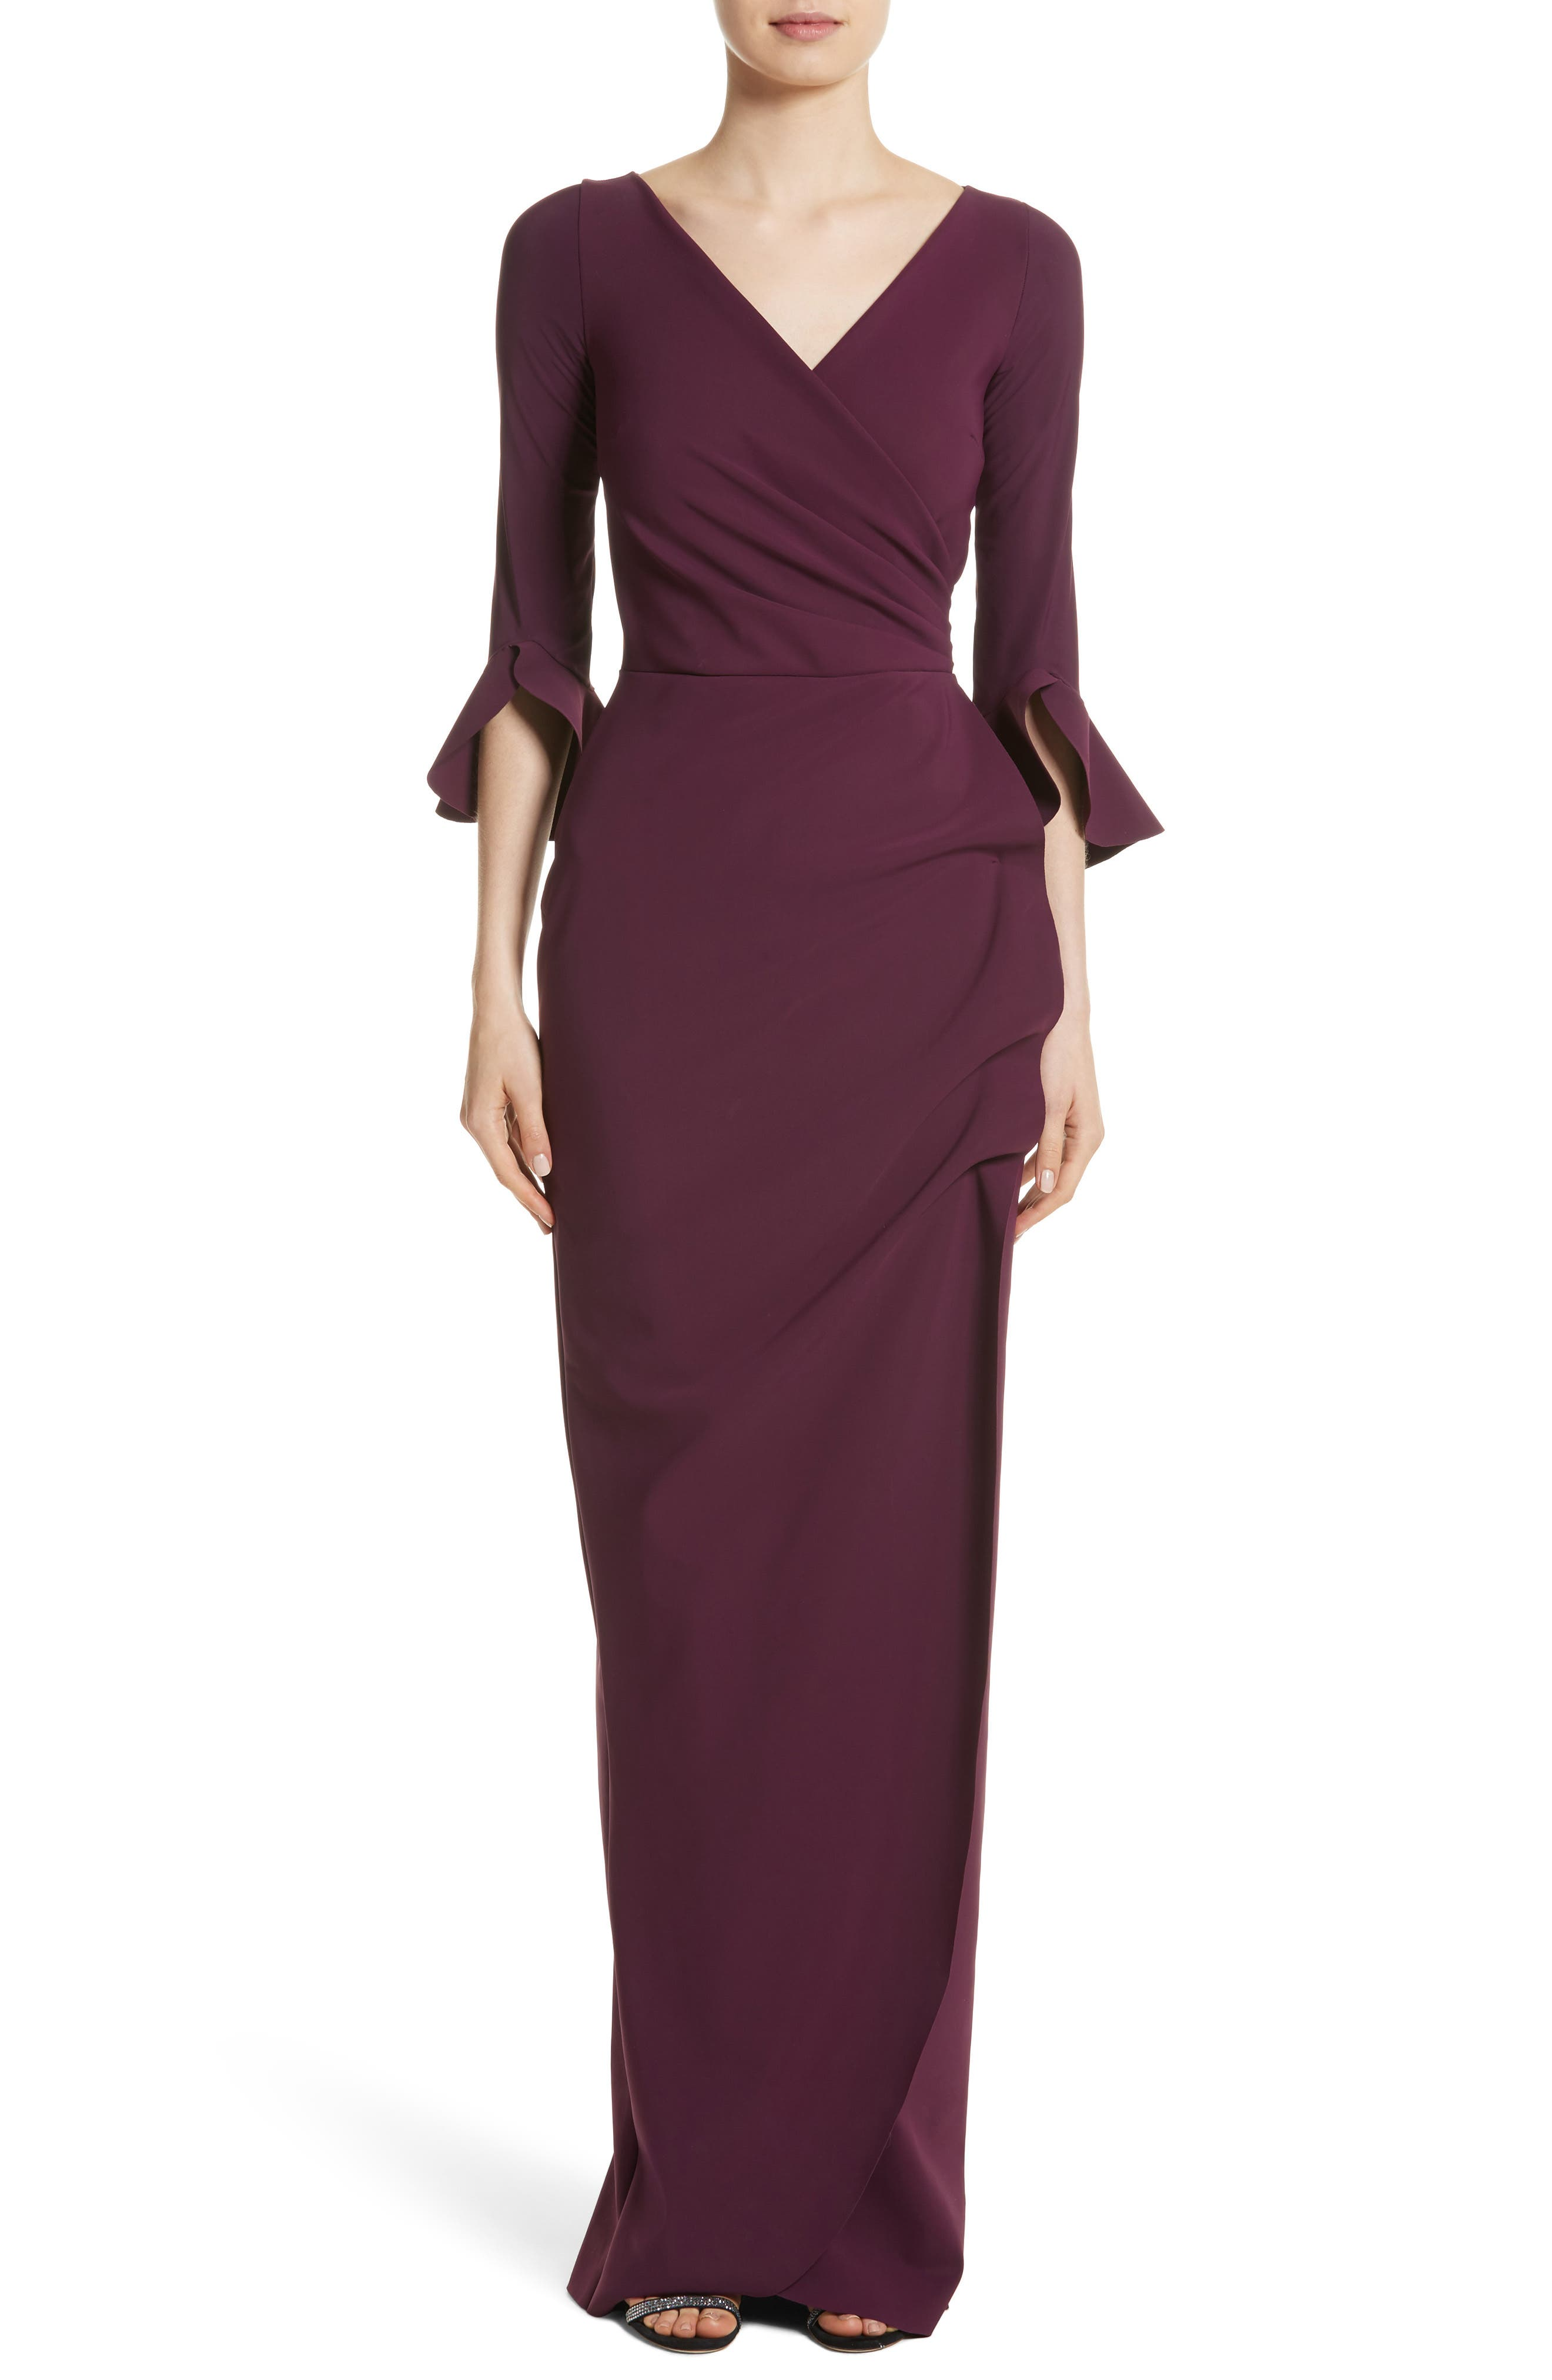 Chiara Boni La Petite Robe Ruched Bell Sleeve Evening Dress